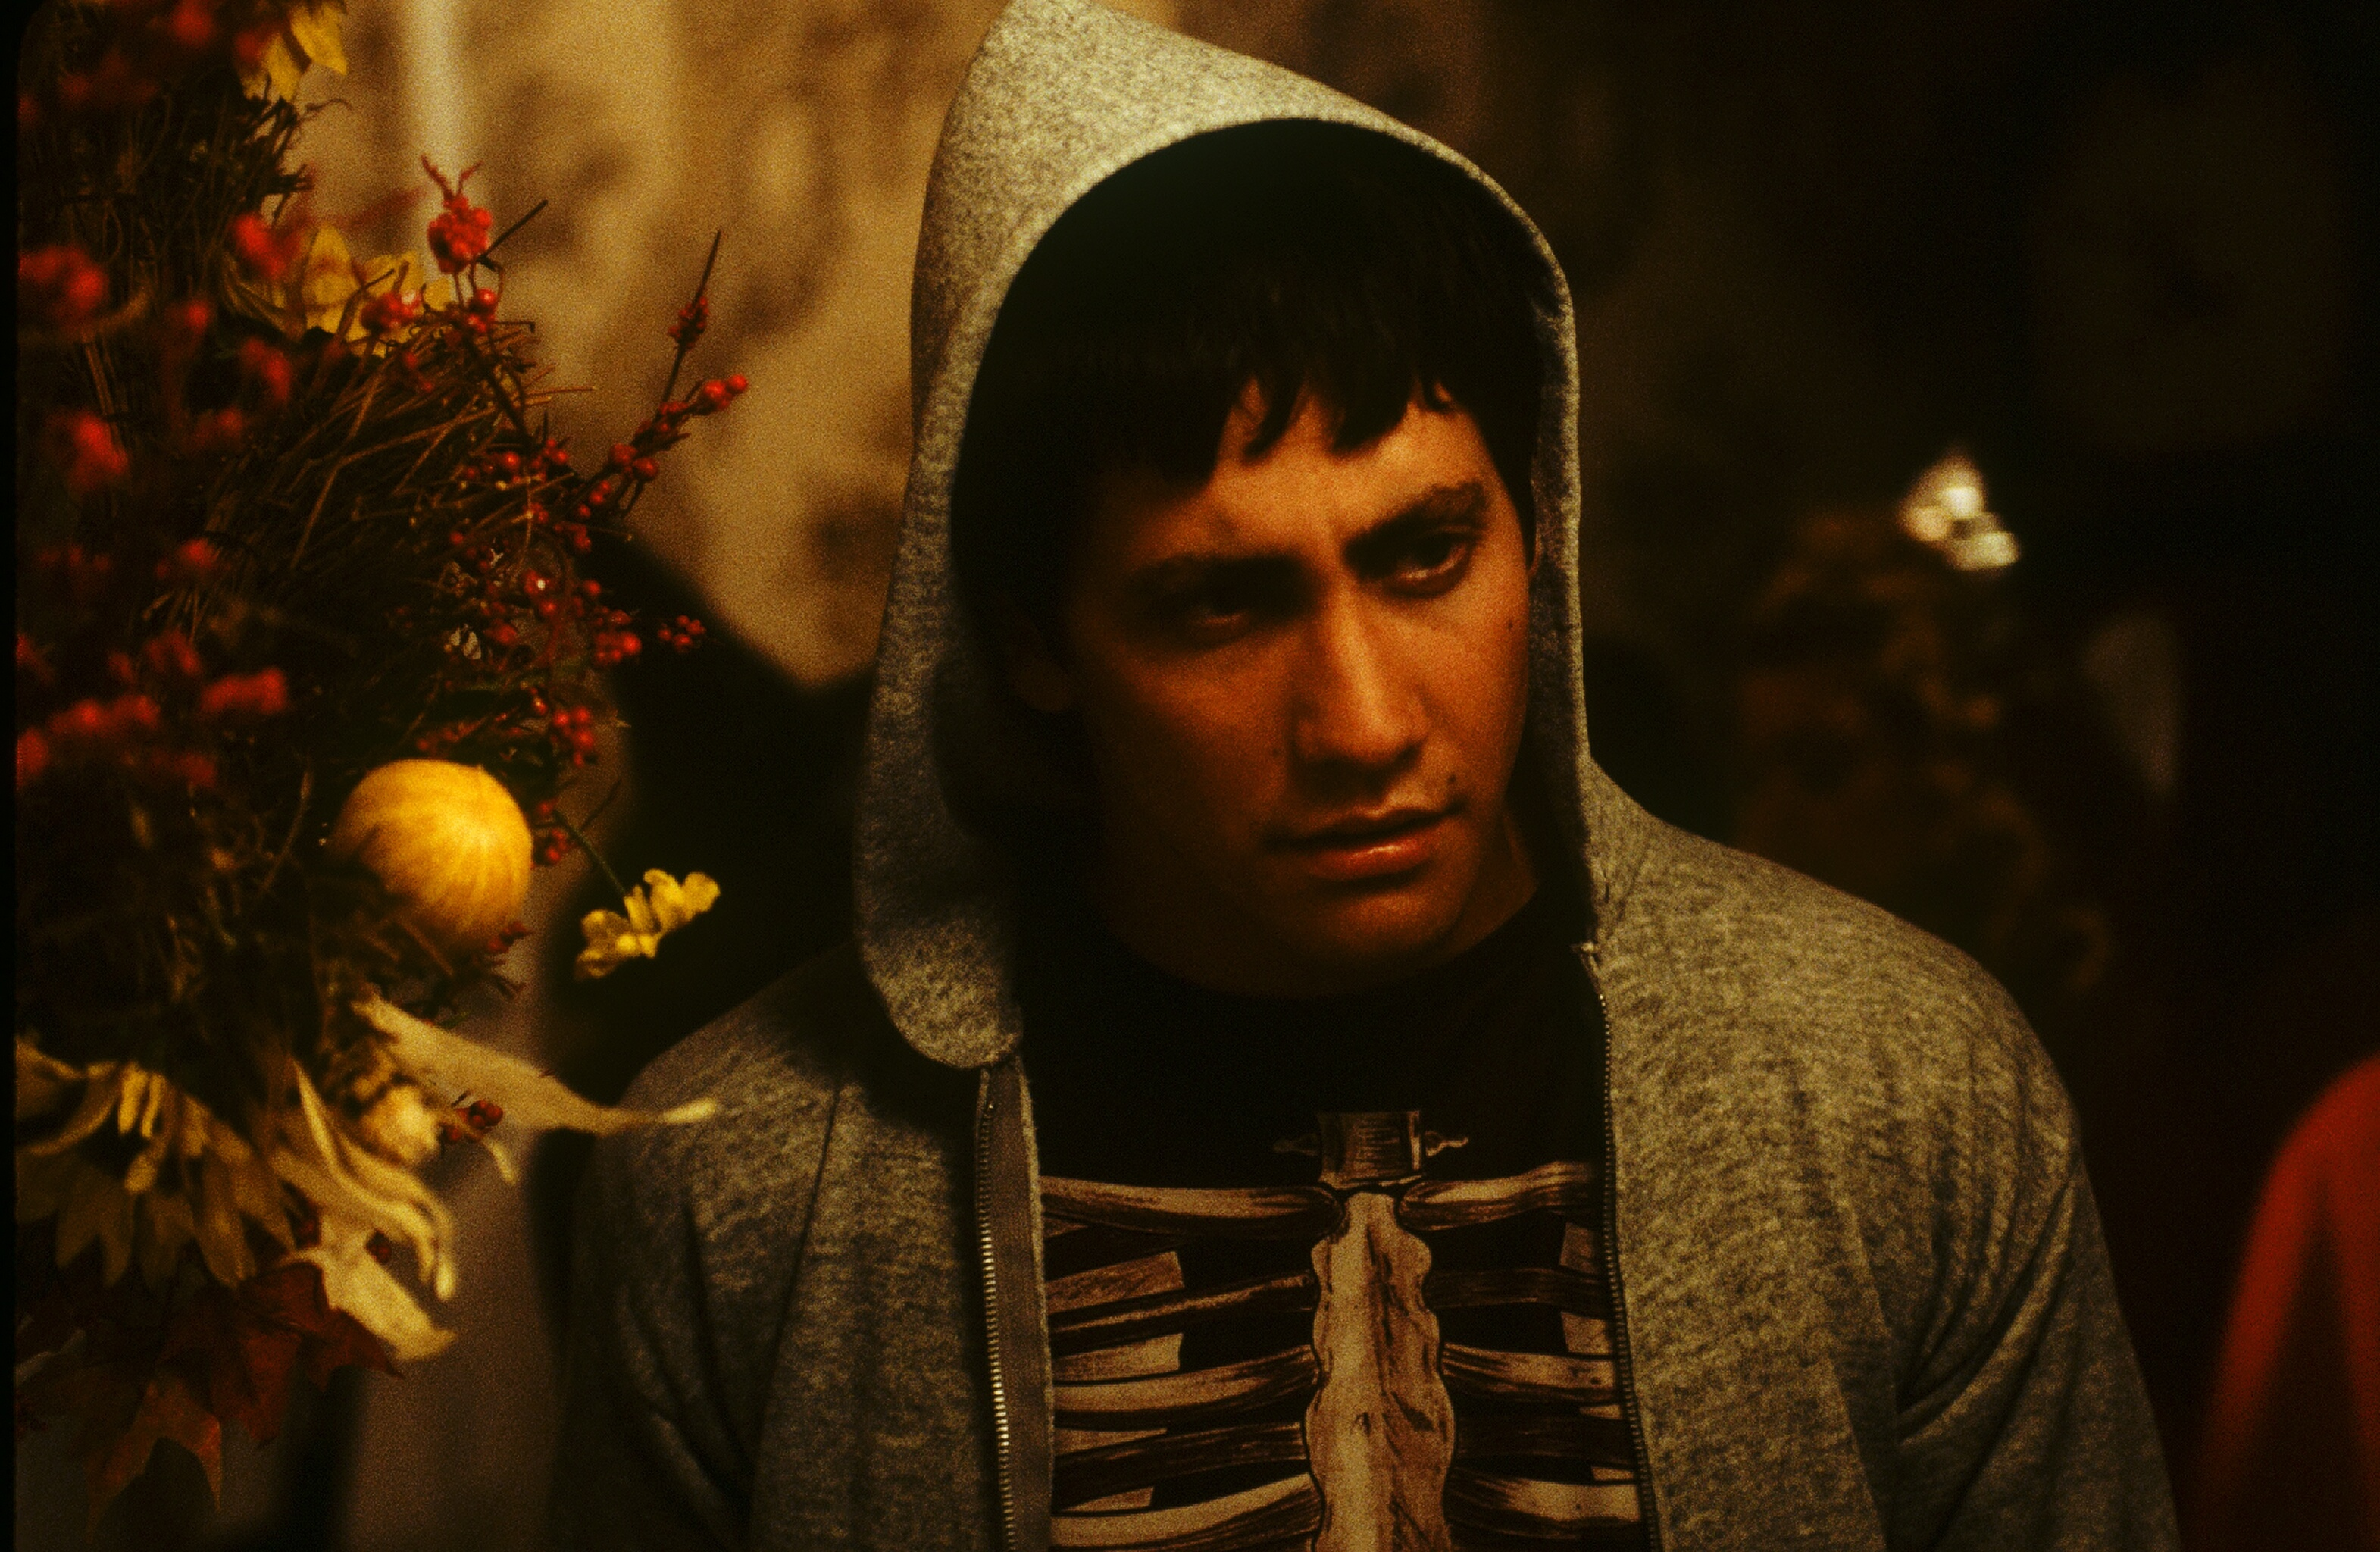 DONNIE DARKO Richard Kelly Jake Gyllenhaal